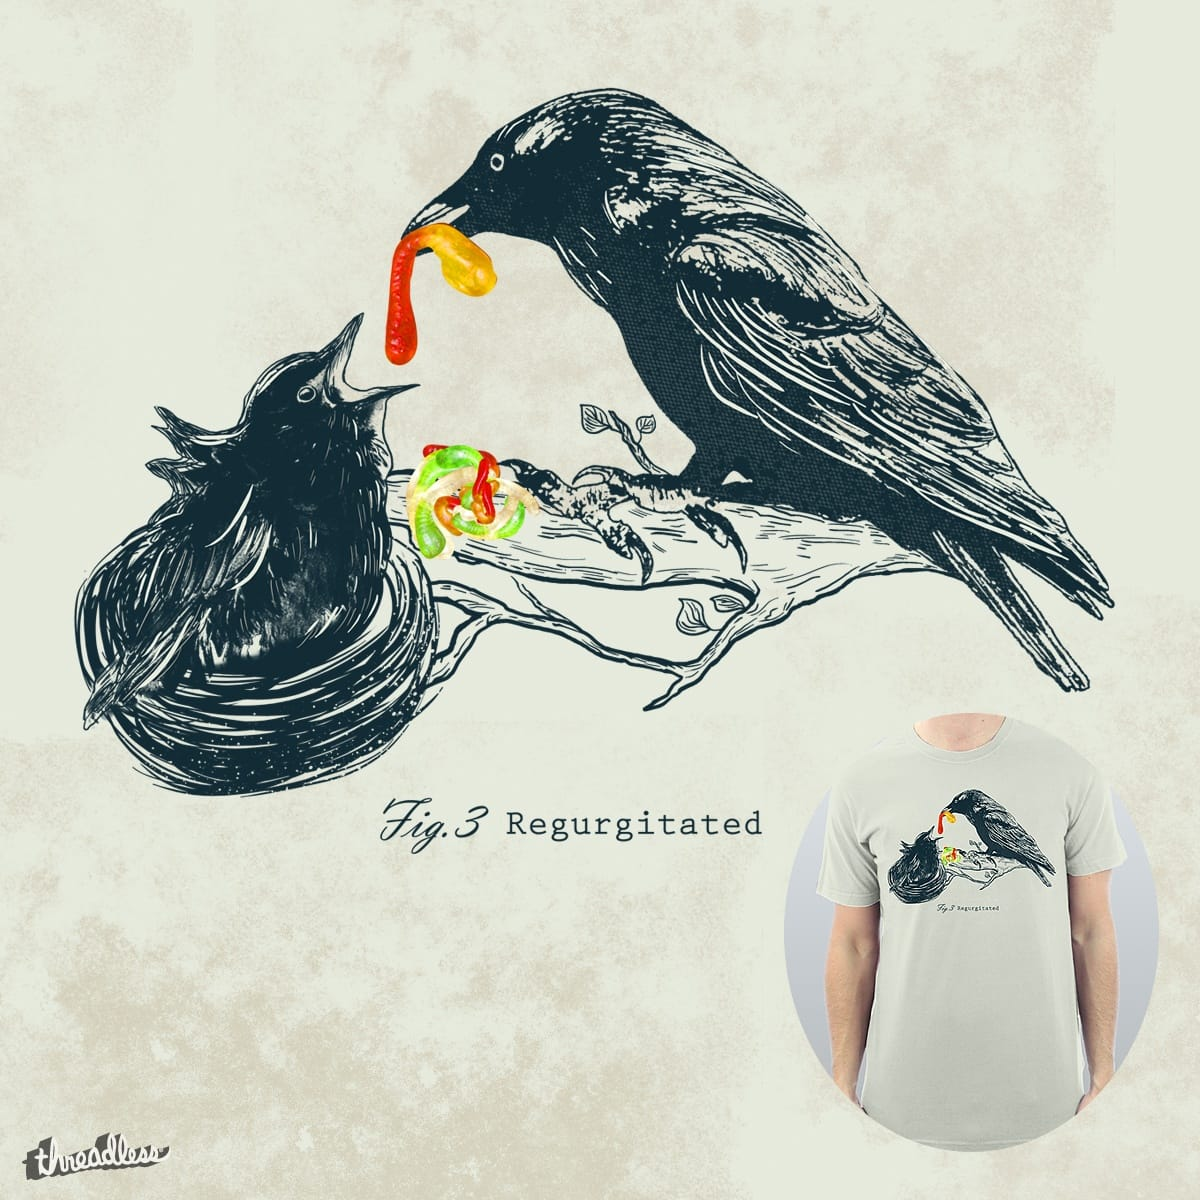 Regurgitation by DalemyMan on Threadless